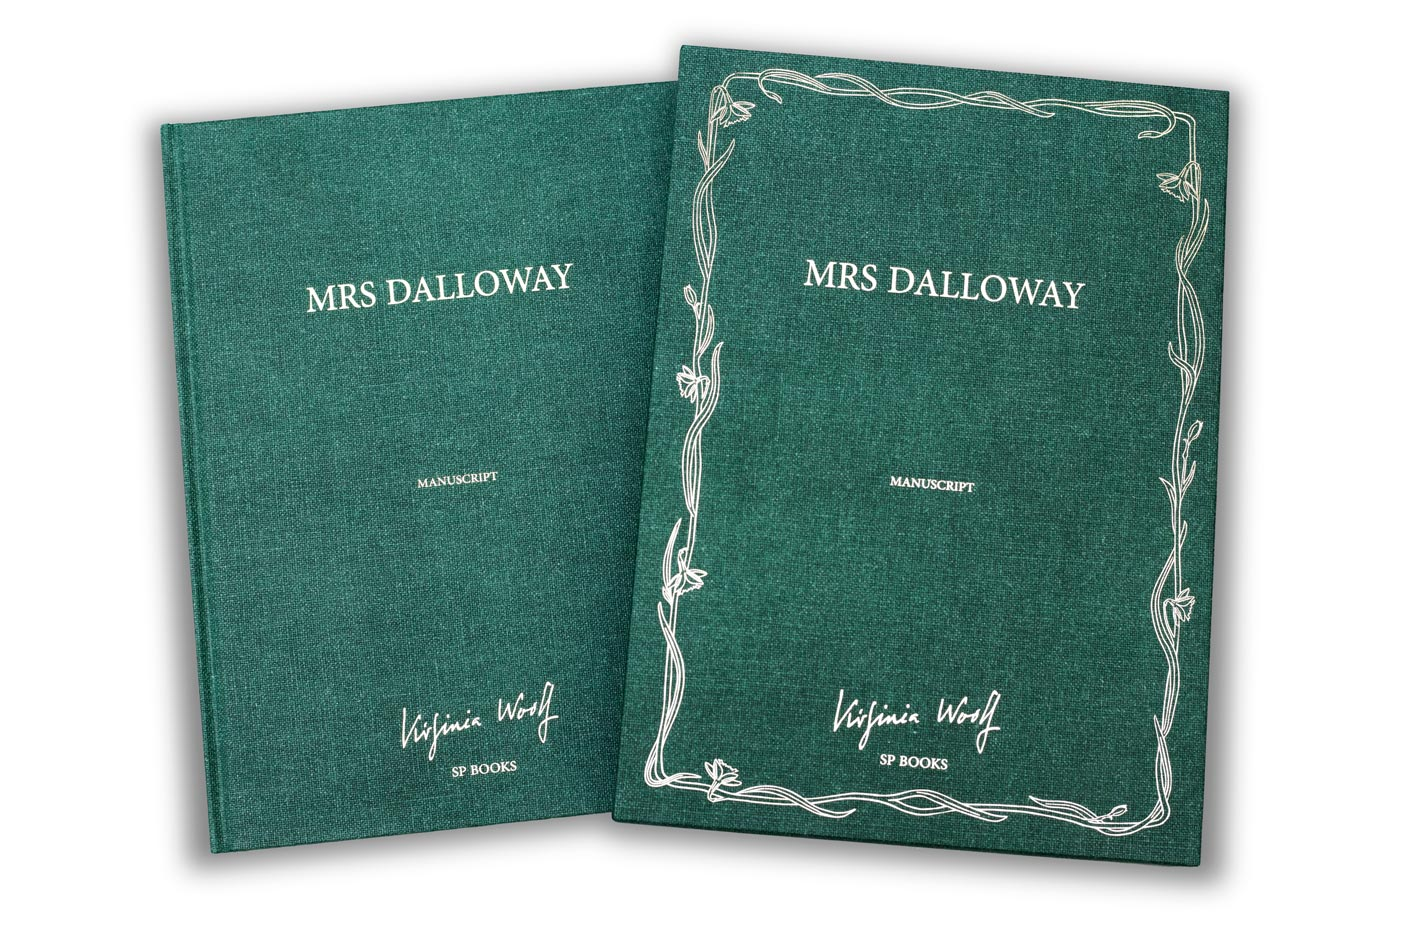 Mrs Dalloway book and slipcase